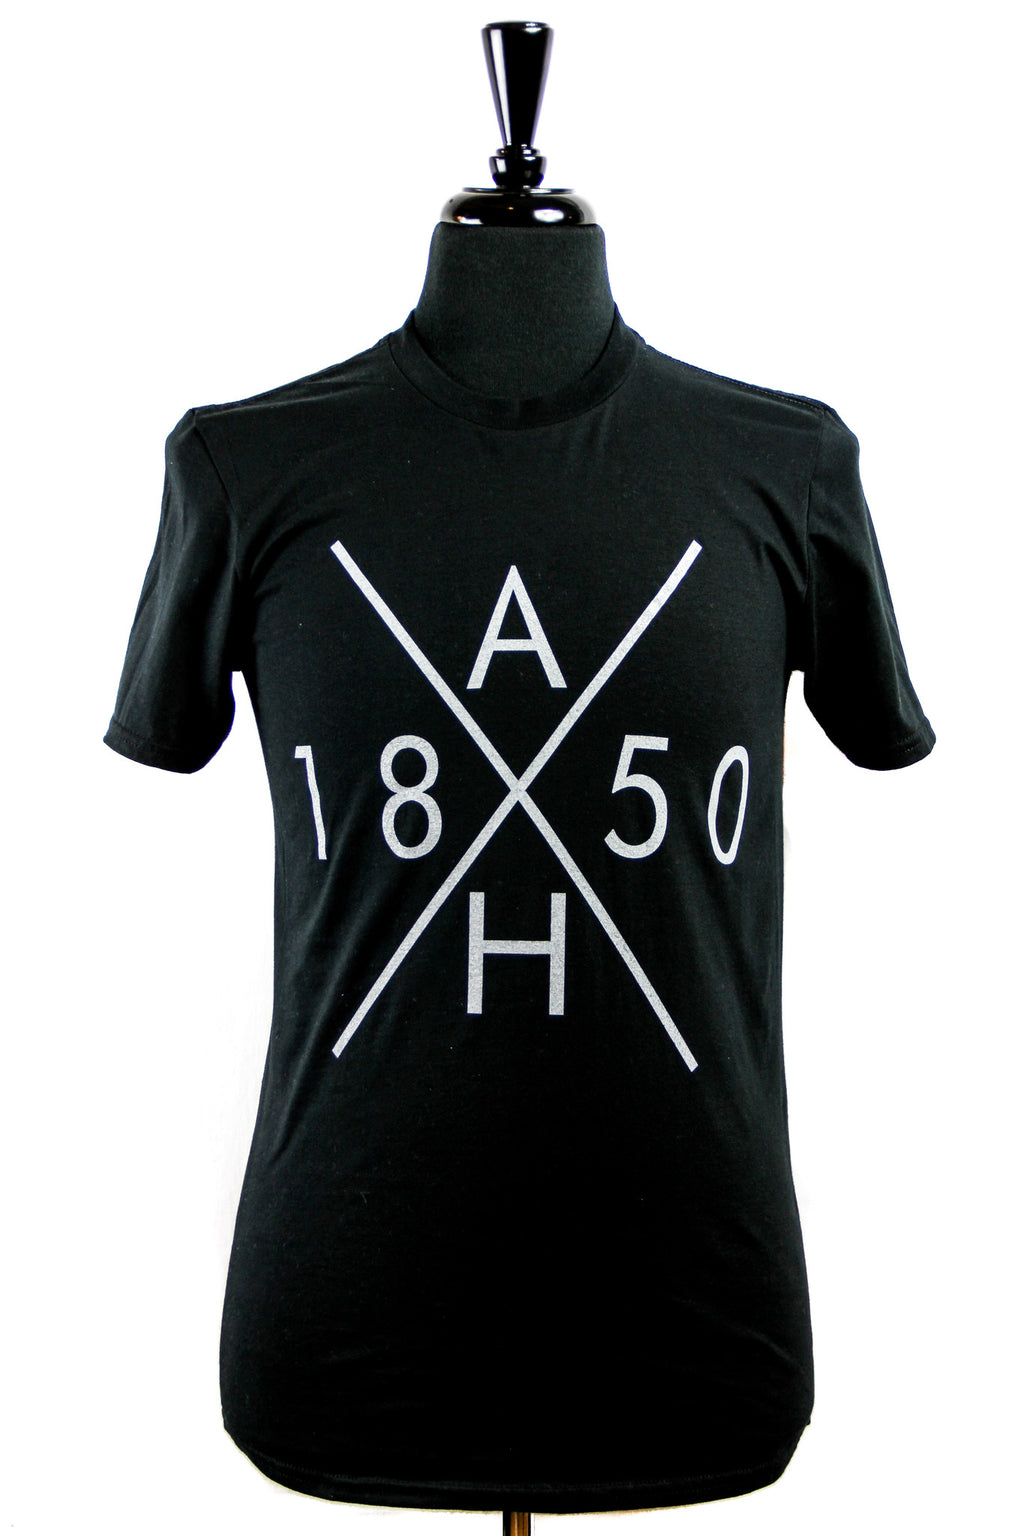 AH 1850 SHOP TEE - black